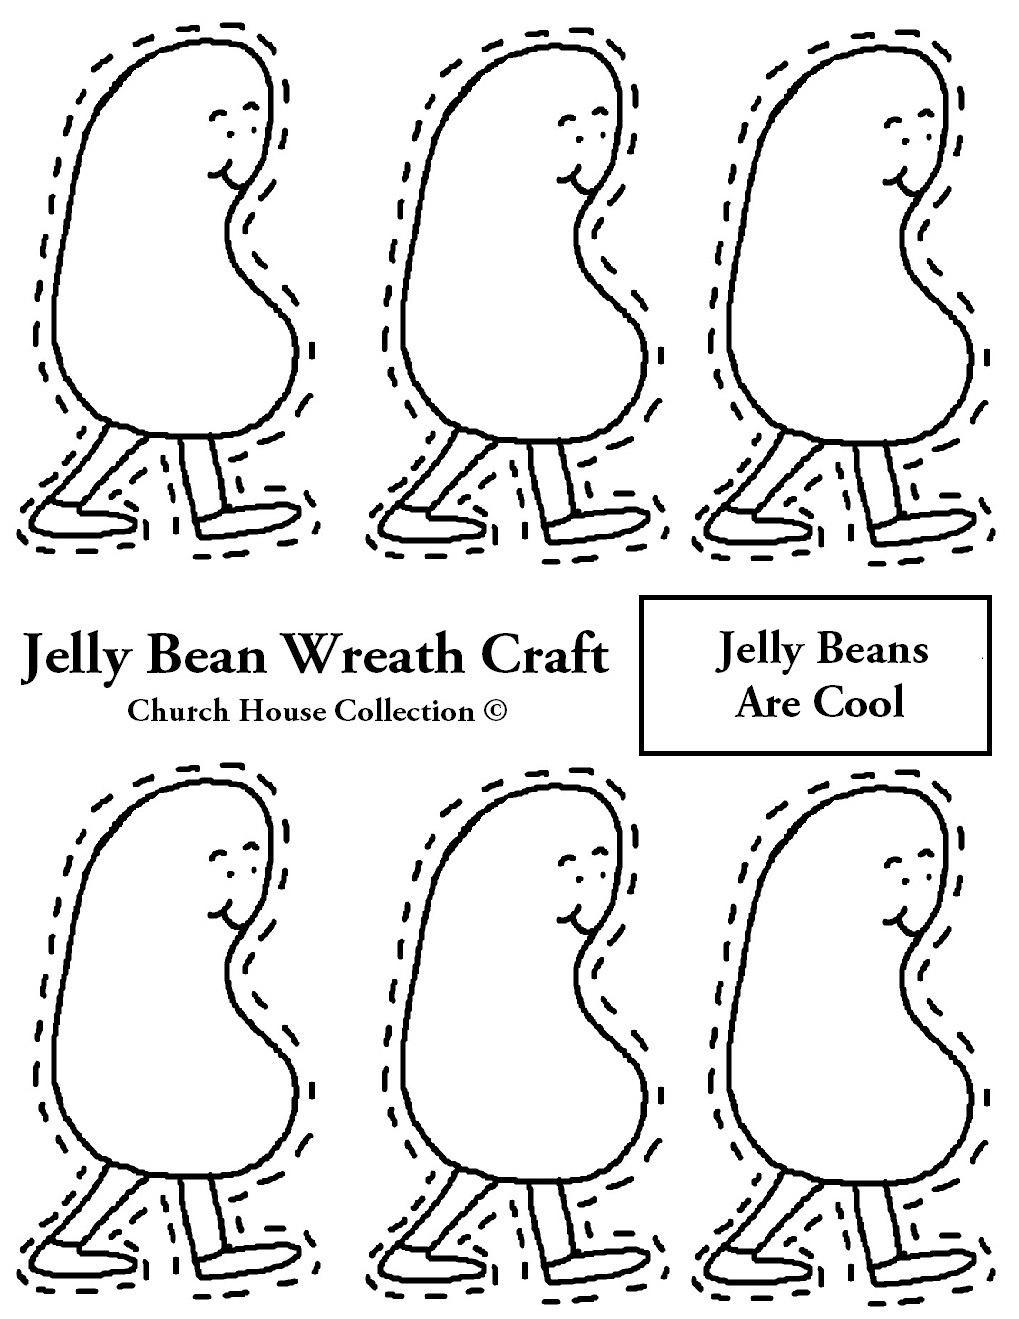 Church House Collection Blog: Cave City School Jelly Bean